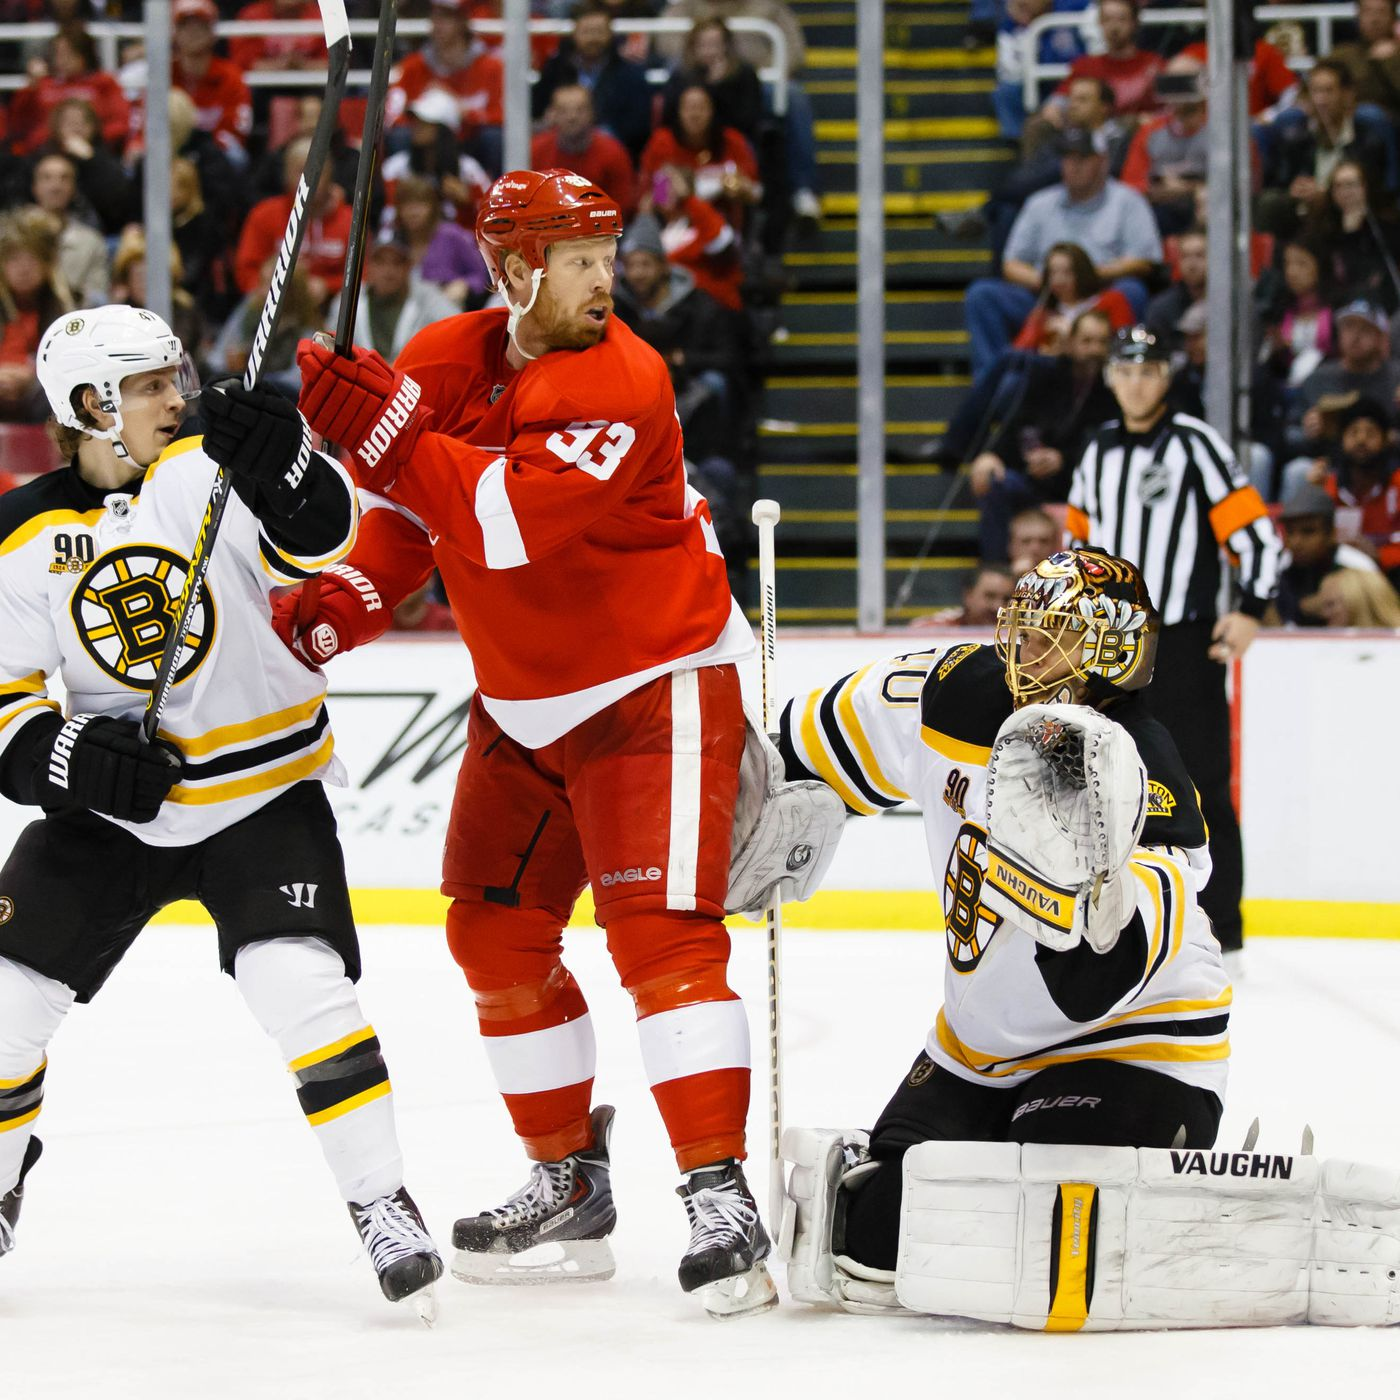 Bruins vs  Red Wings preview: On paper, Boston clearly the